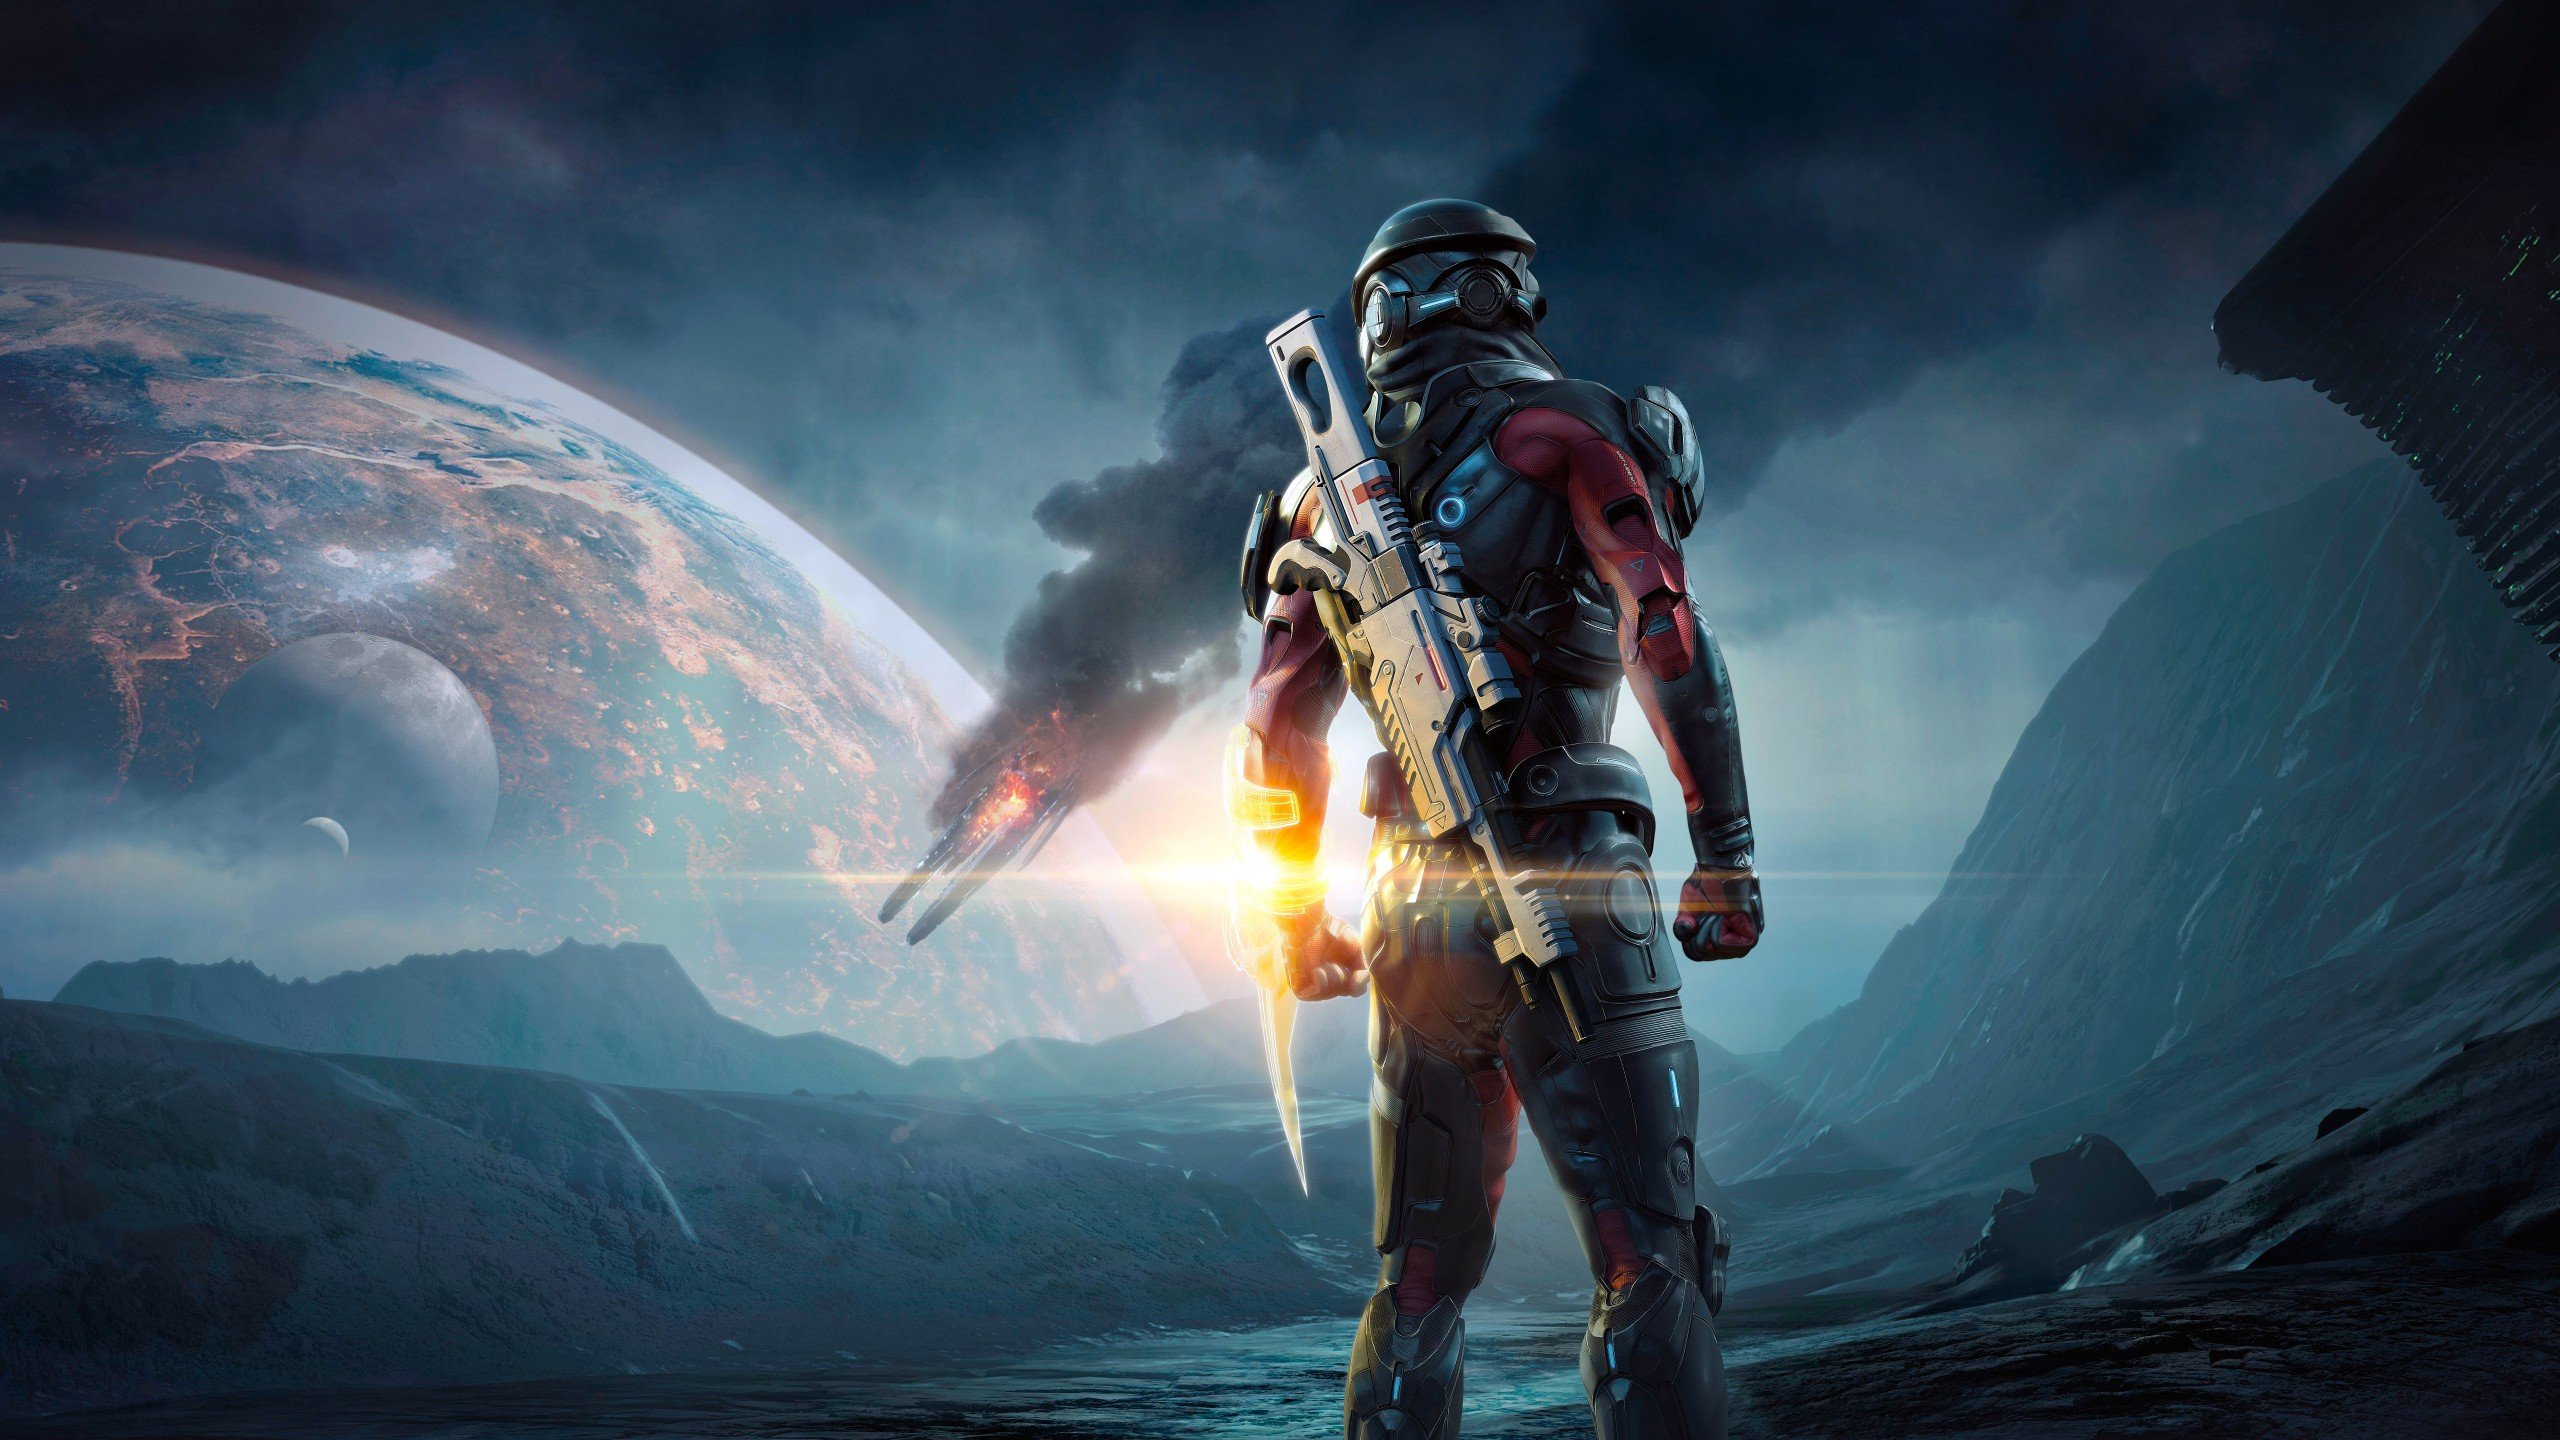 3d Wallpaper Mario Mass Effect Andromeda 4k Wallpapers Hd Wallpapers Id